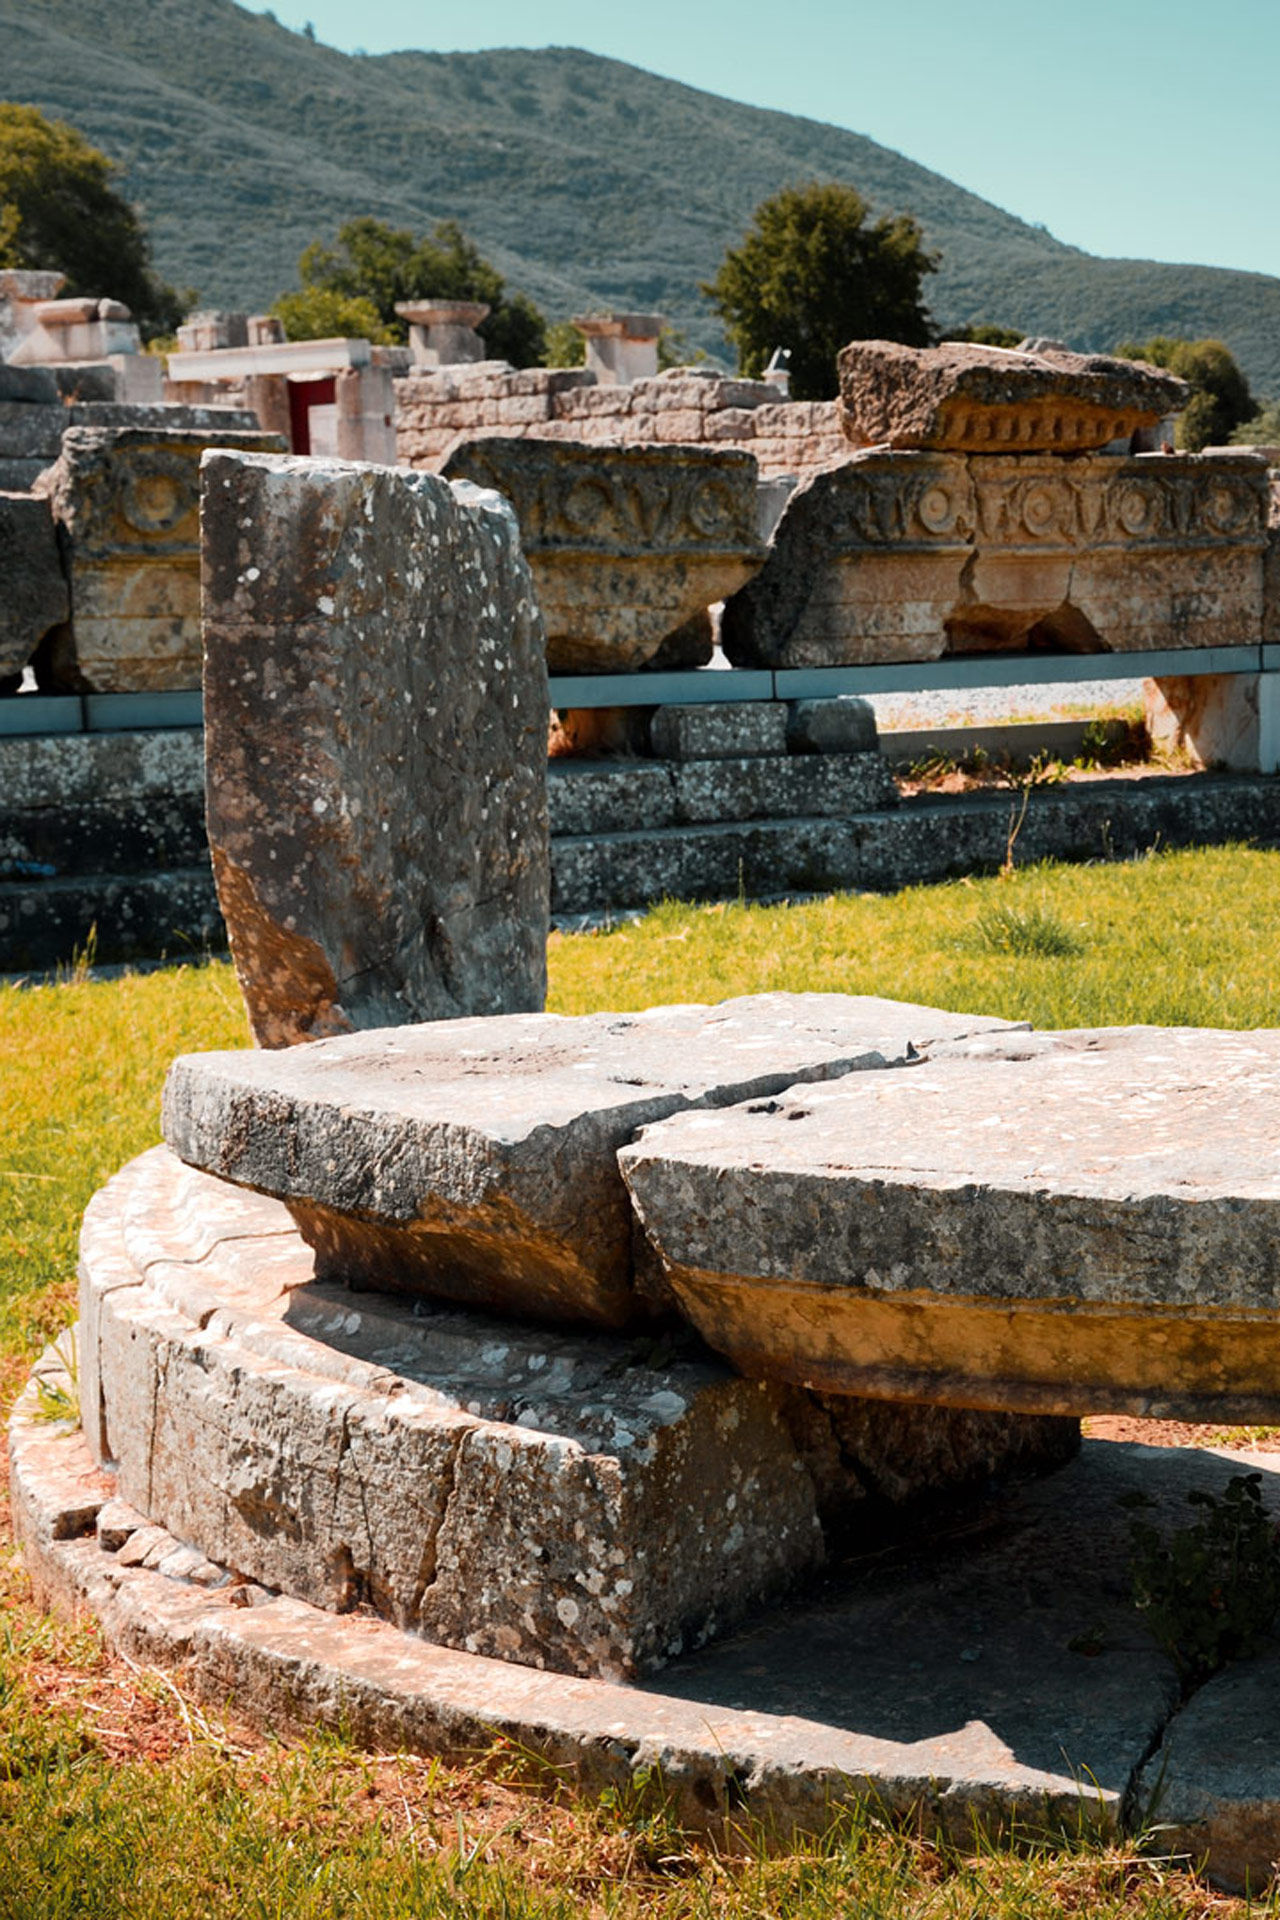 Ancient Messene ranks as one of the most significant remains of Greek antiquity